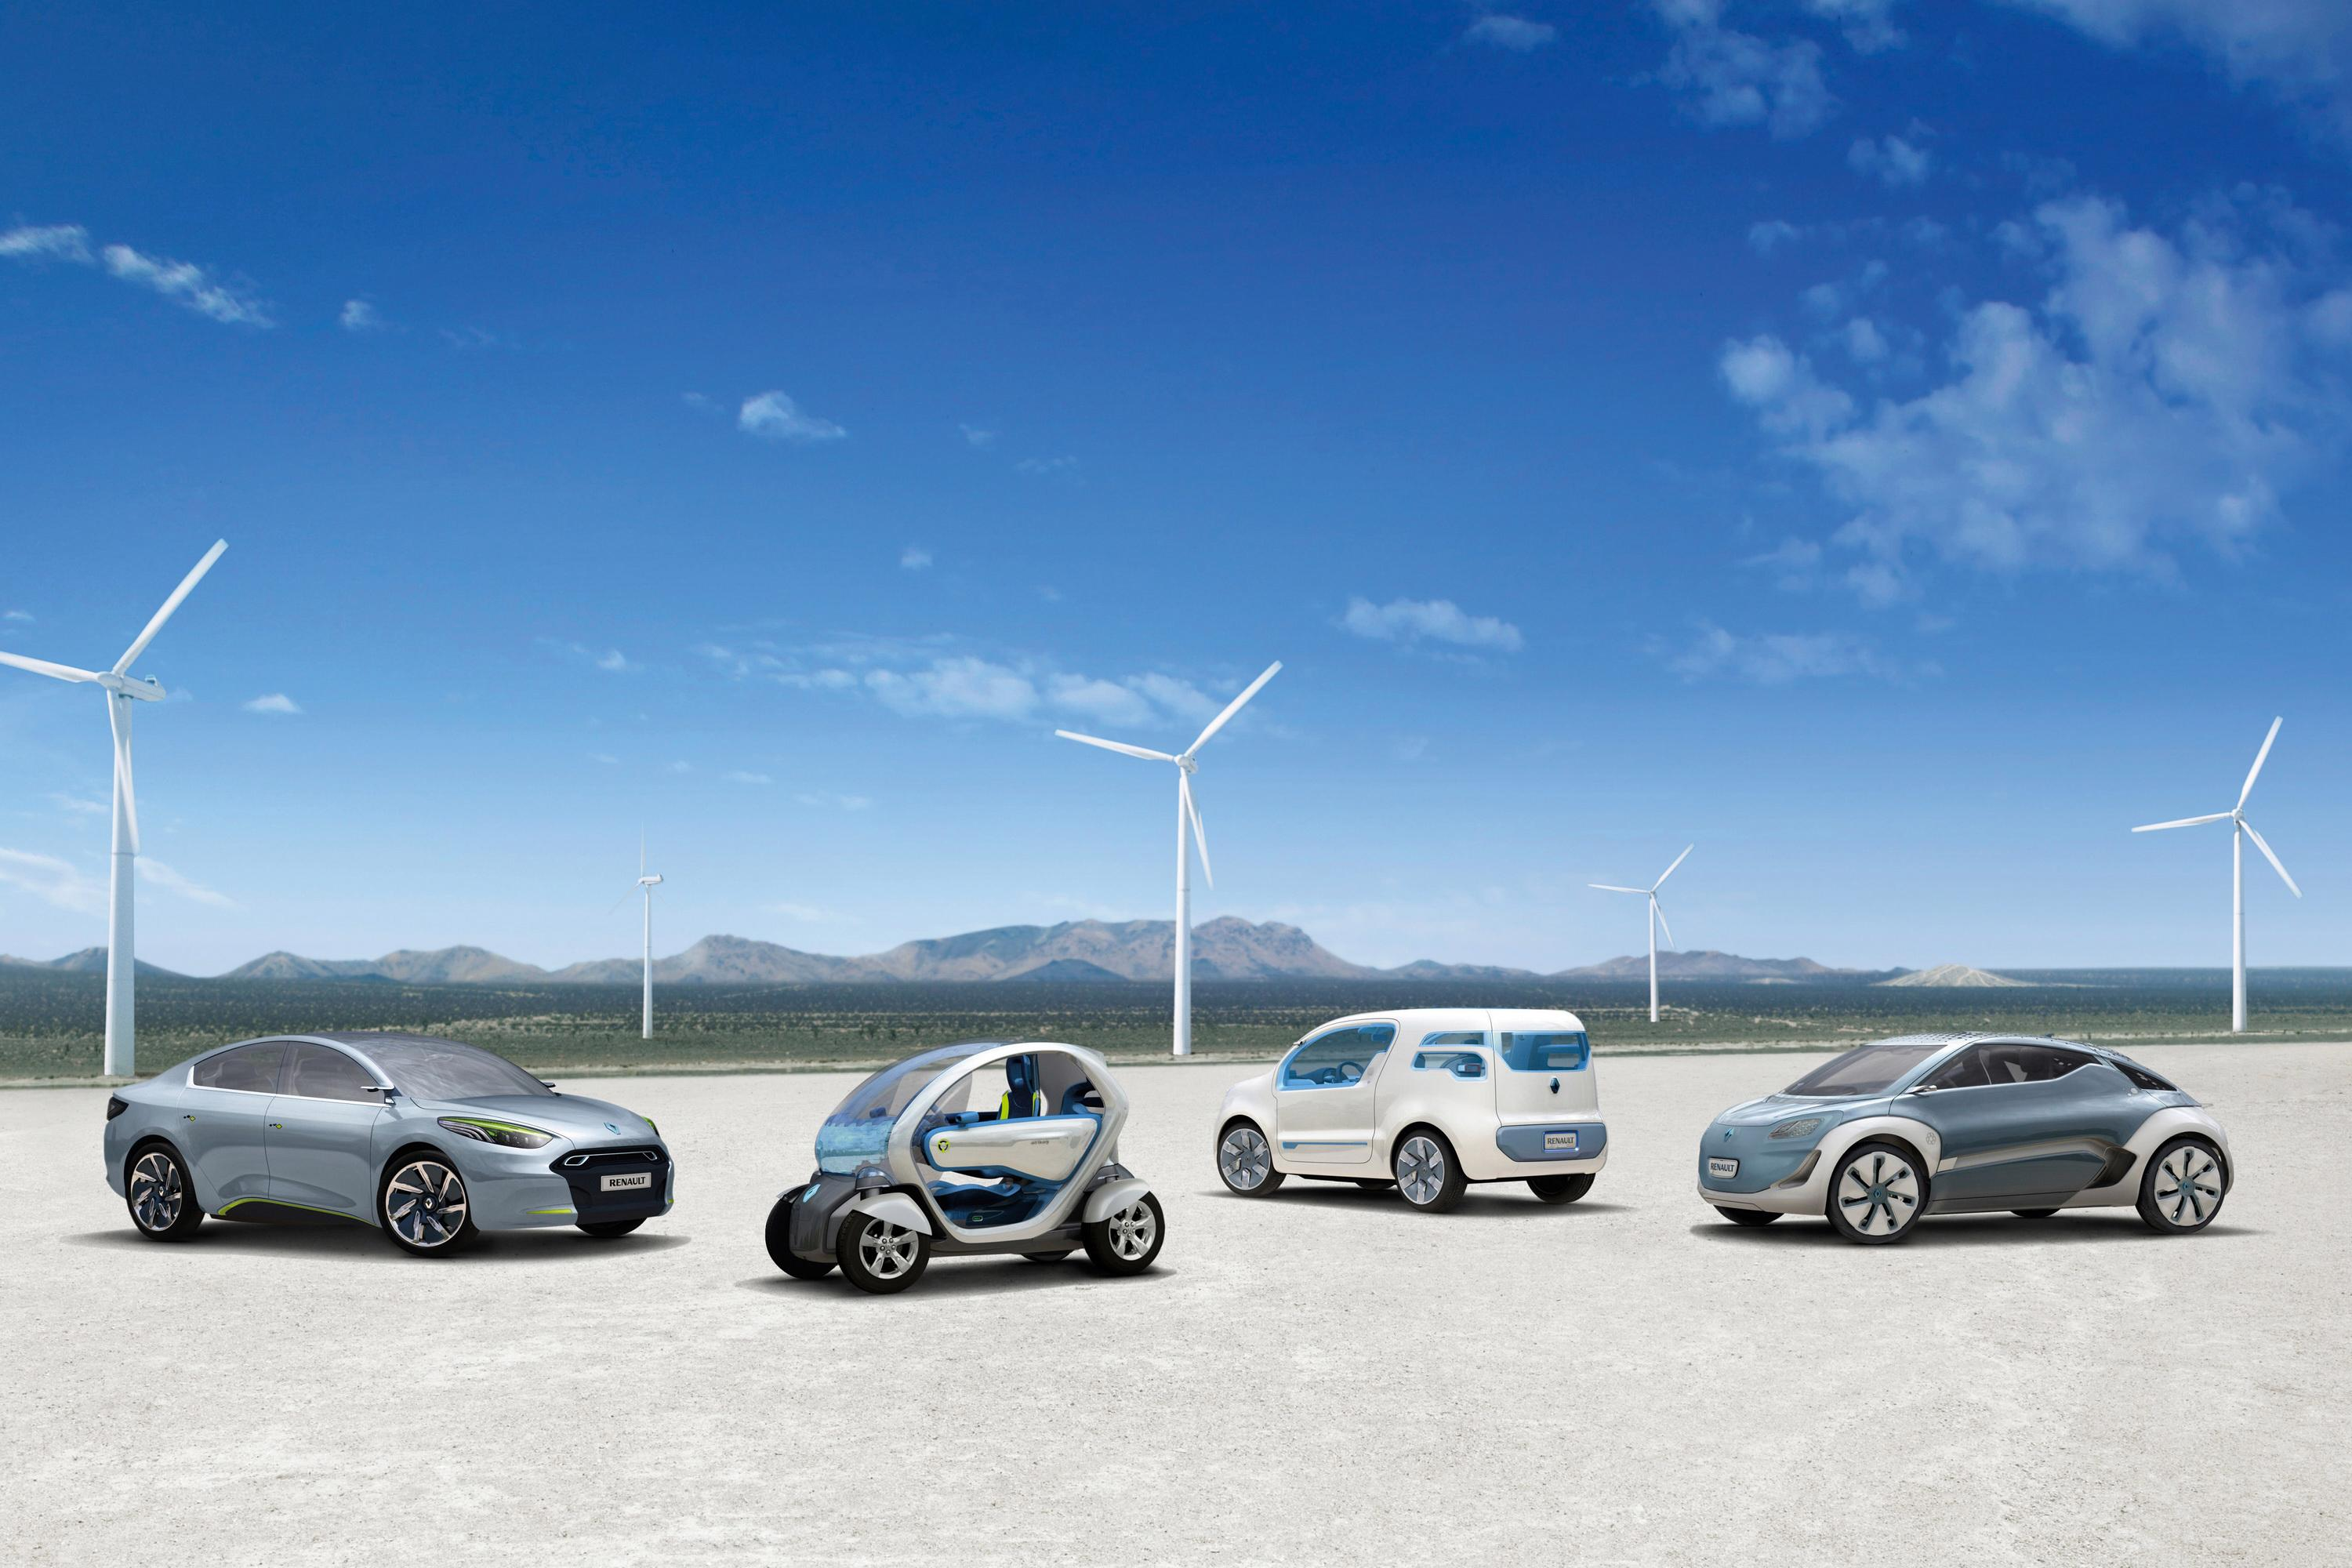 Renault electric vehicle concepts